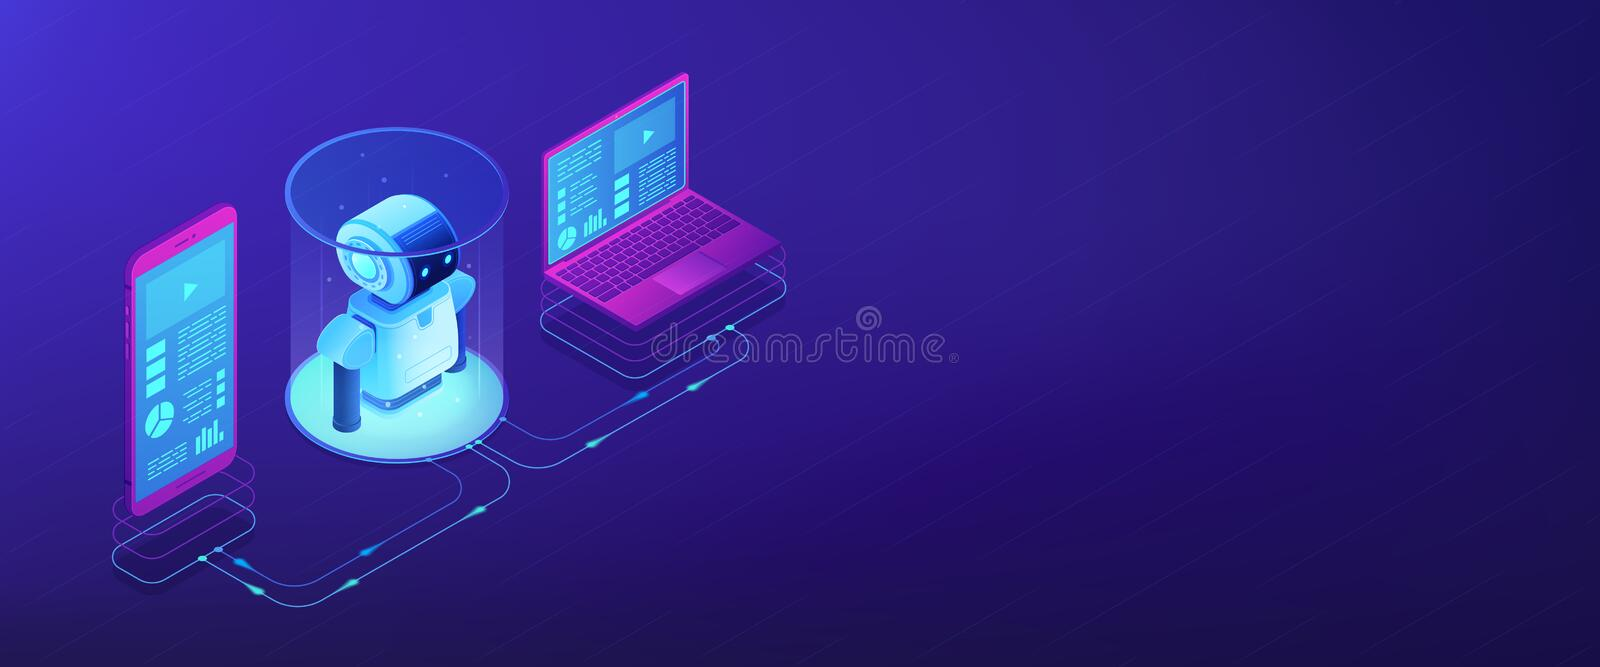 WiFi controlled robotics isometric 3D banner header. Modern robotics system connected with mobile phone and laptop. WiFi controlled robotics, robotics vector illustration